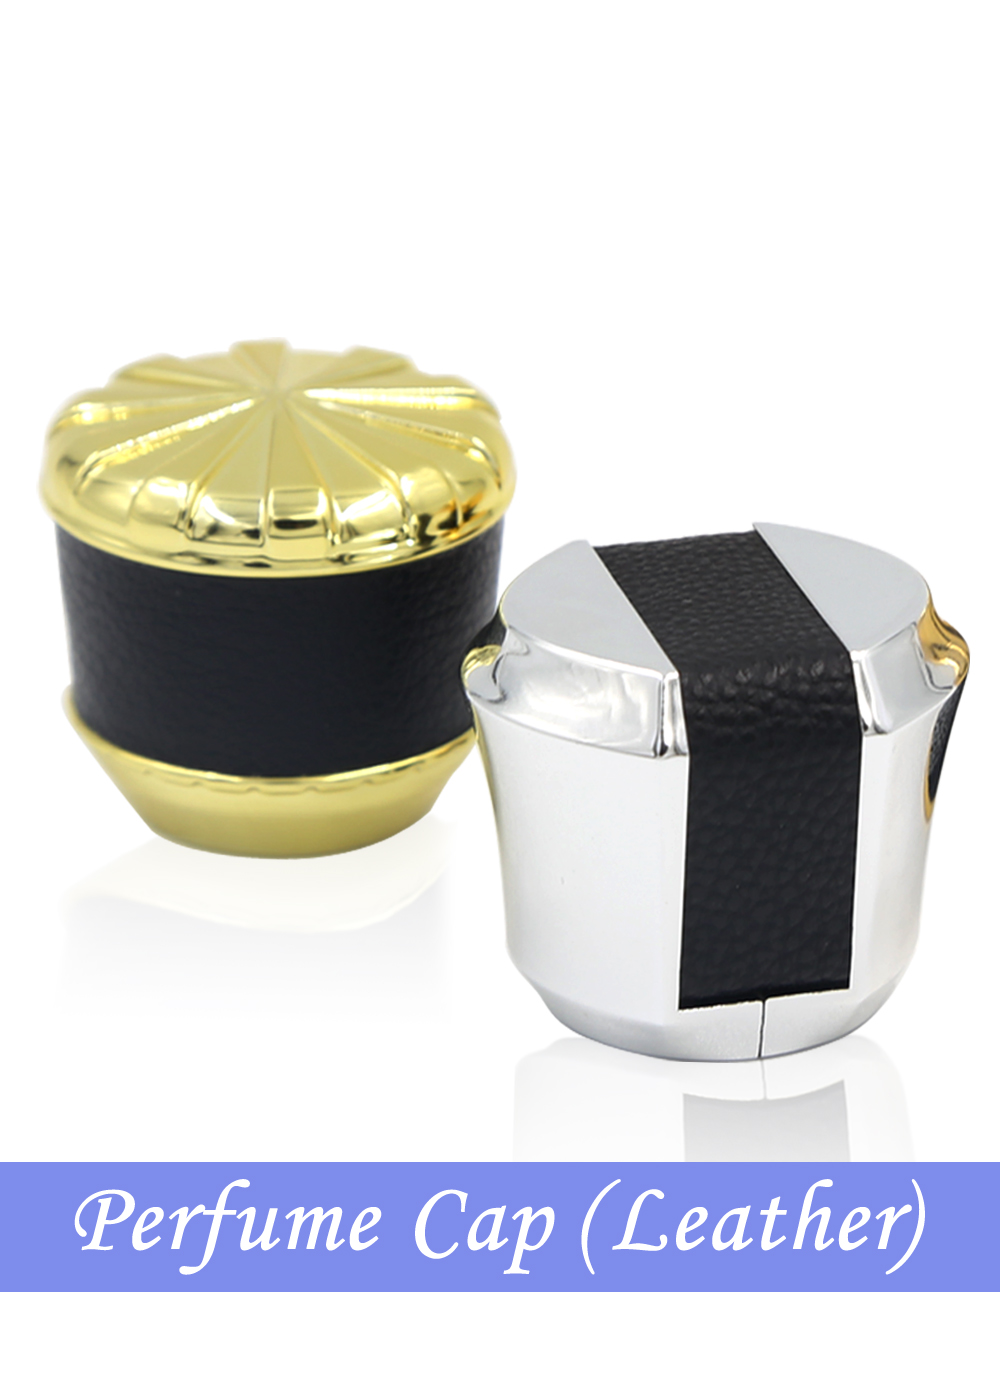 Perfume Cap (Leather)